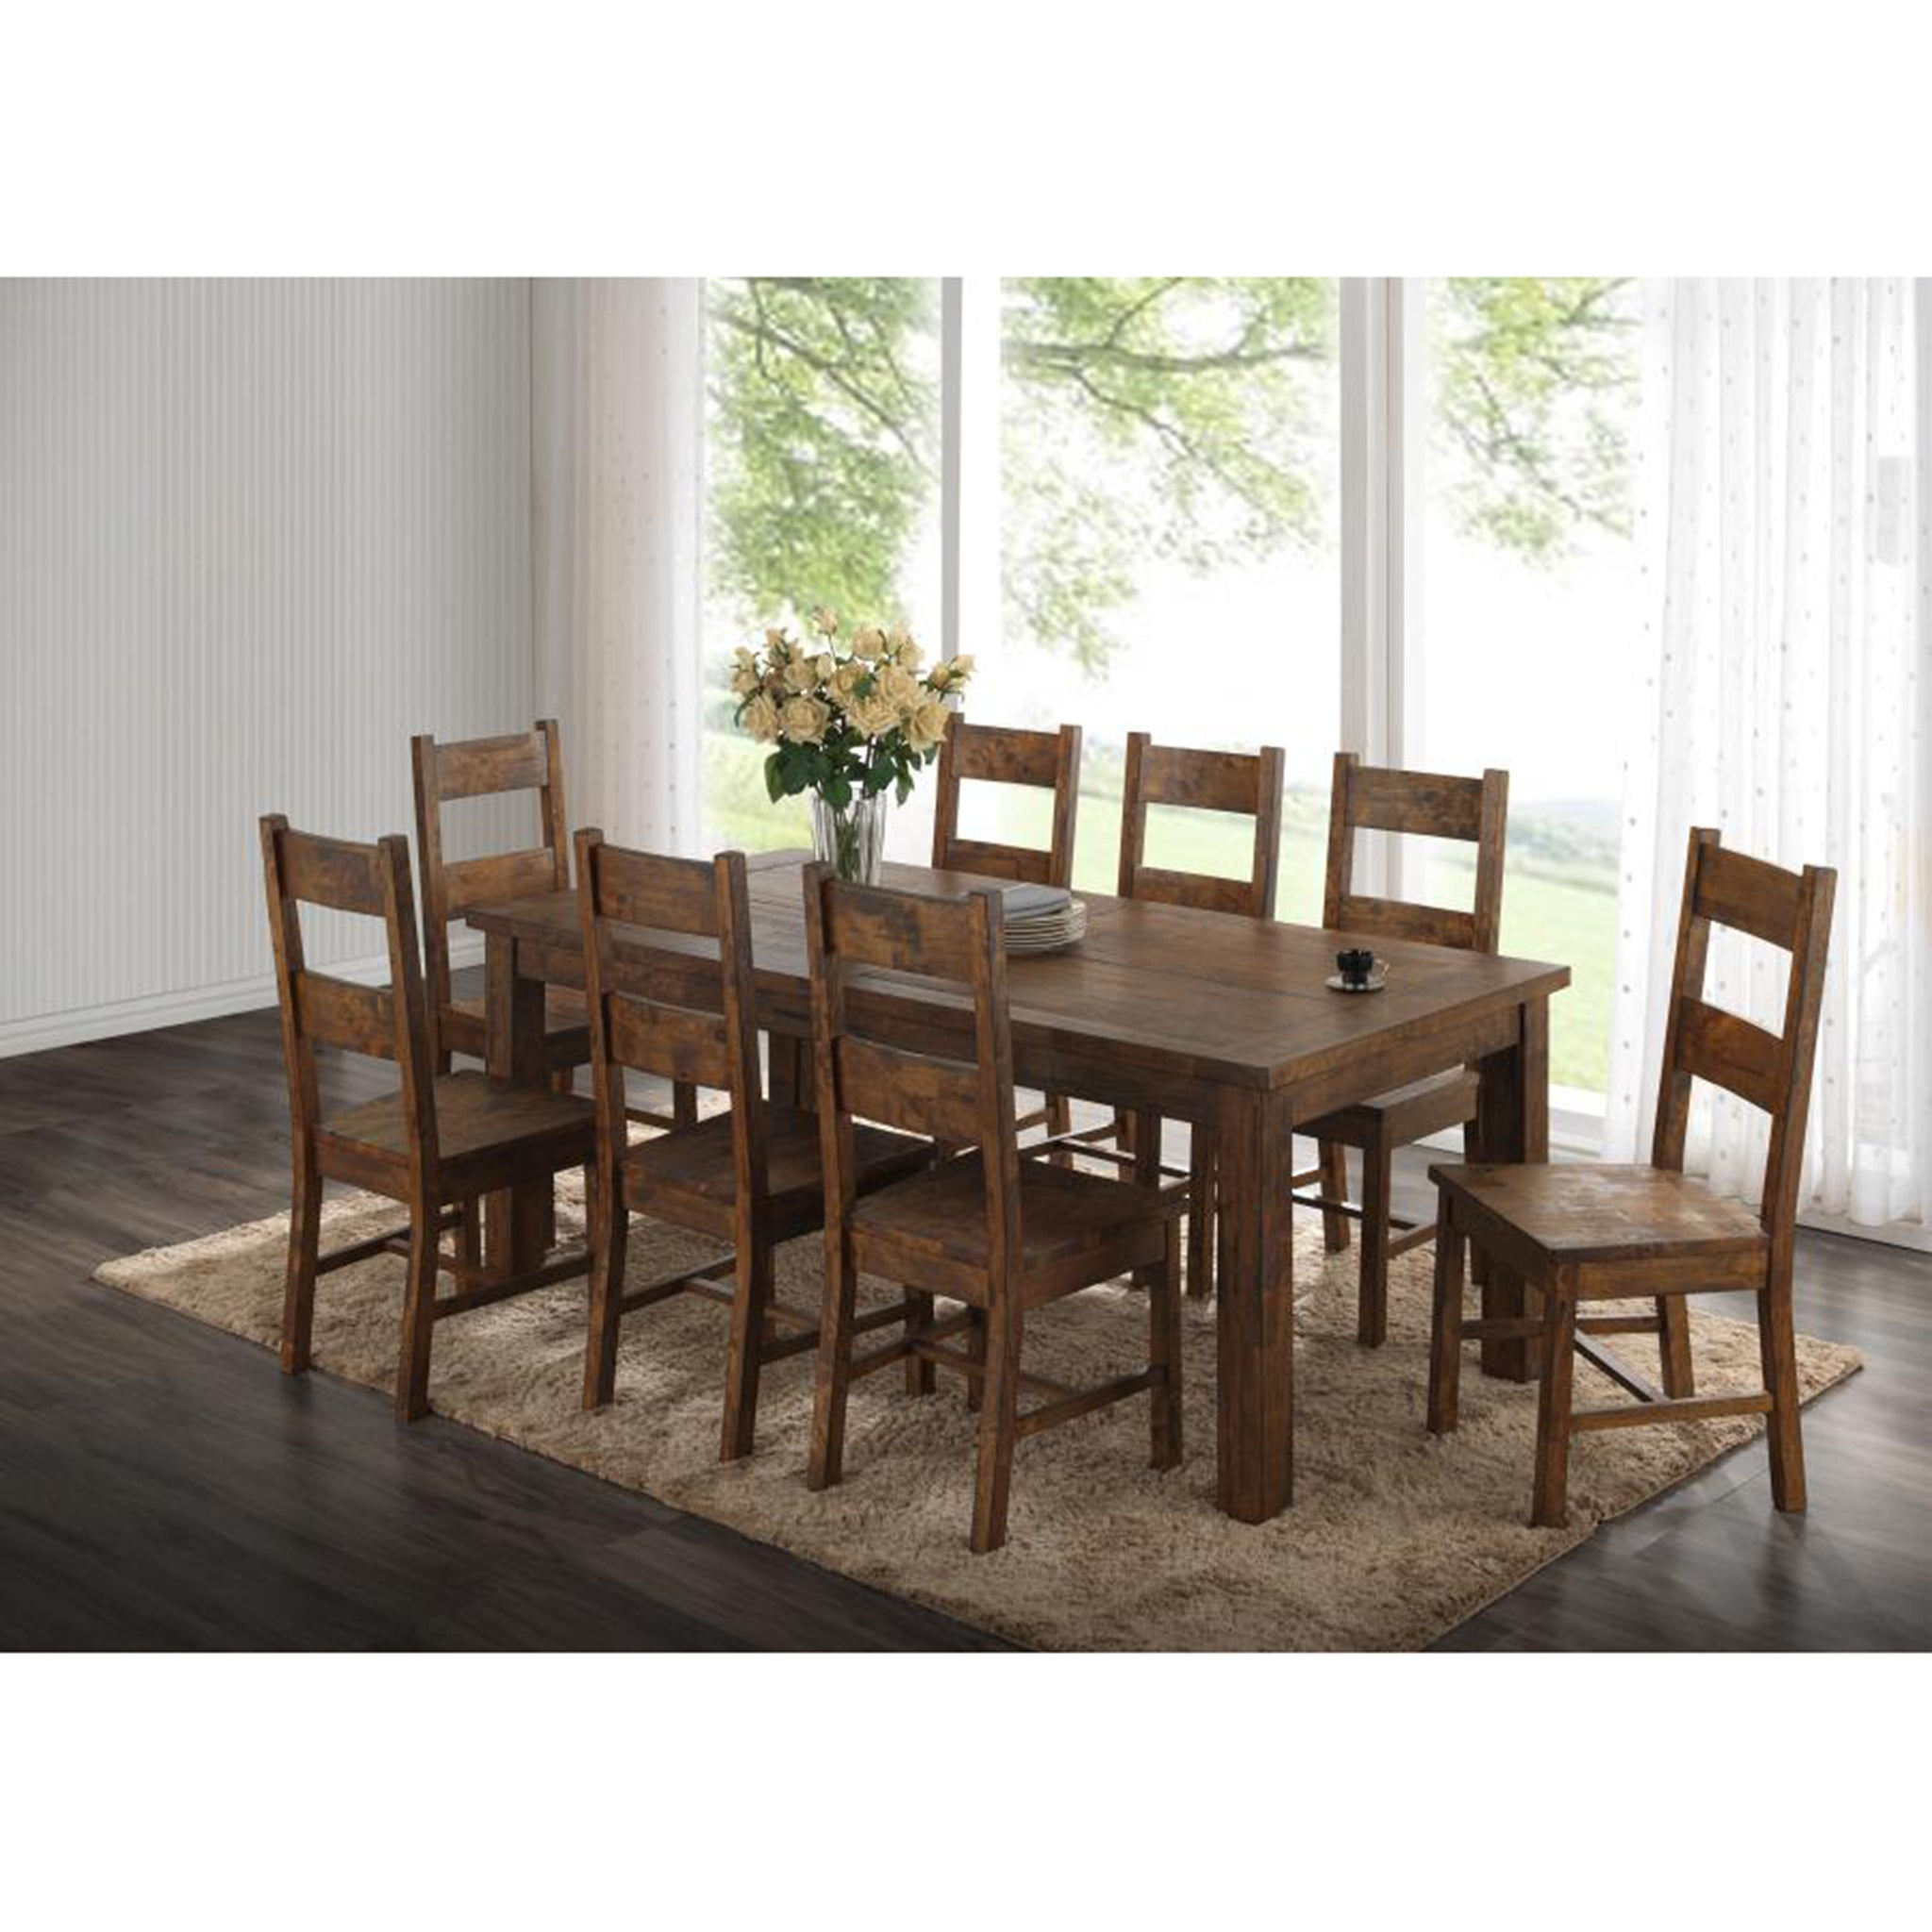 Farmhouse Ladderback Dining Chair Rustic Pecan Set of 4 - Furniture on Main